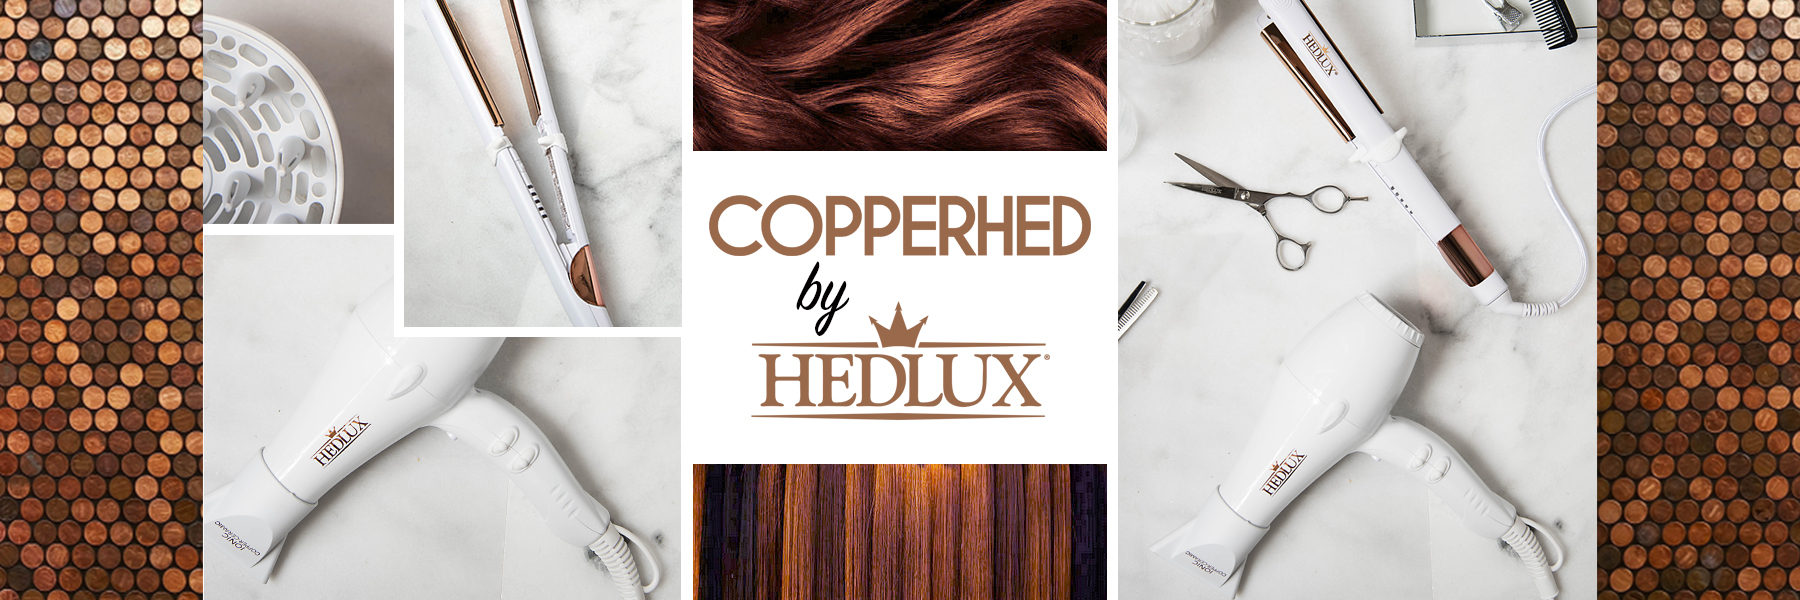 Hedlux Premium Beauty Products